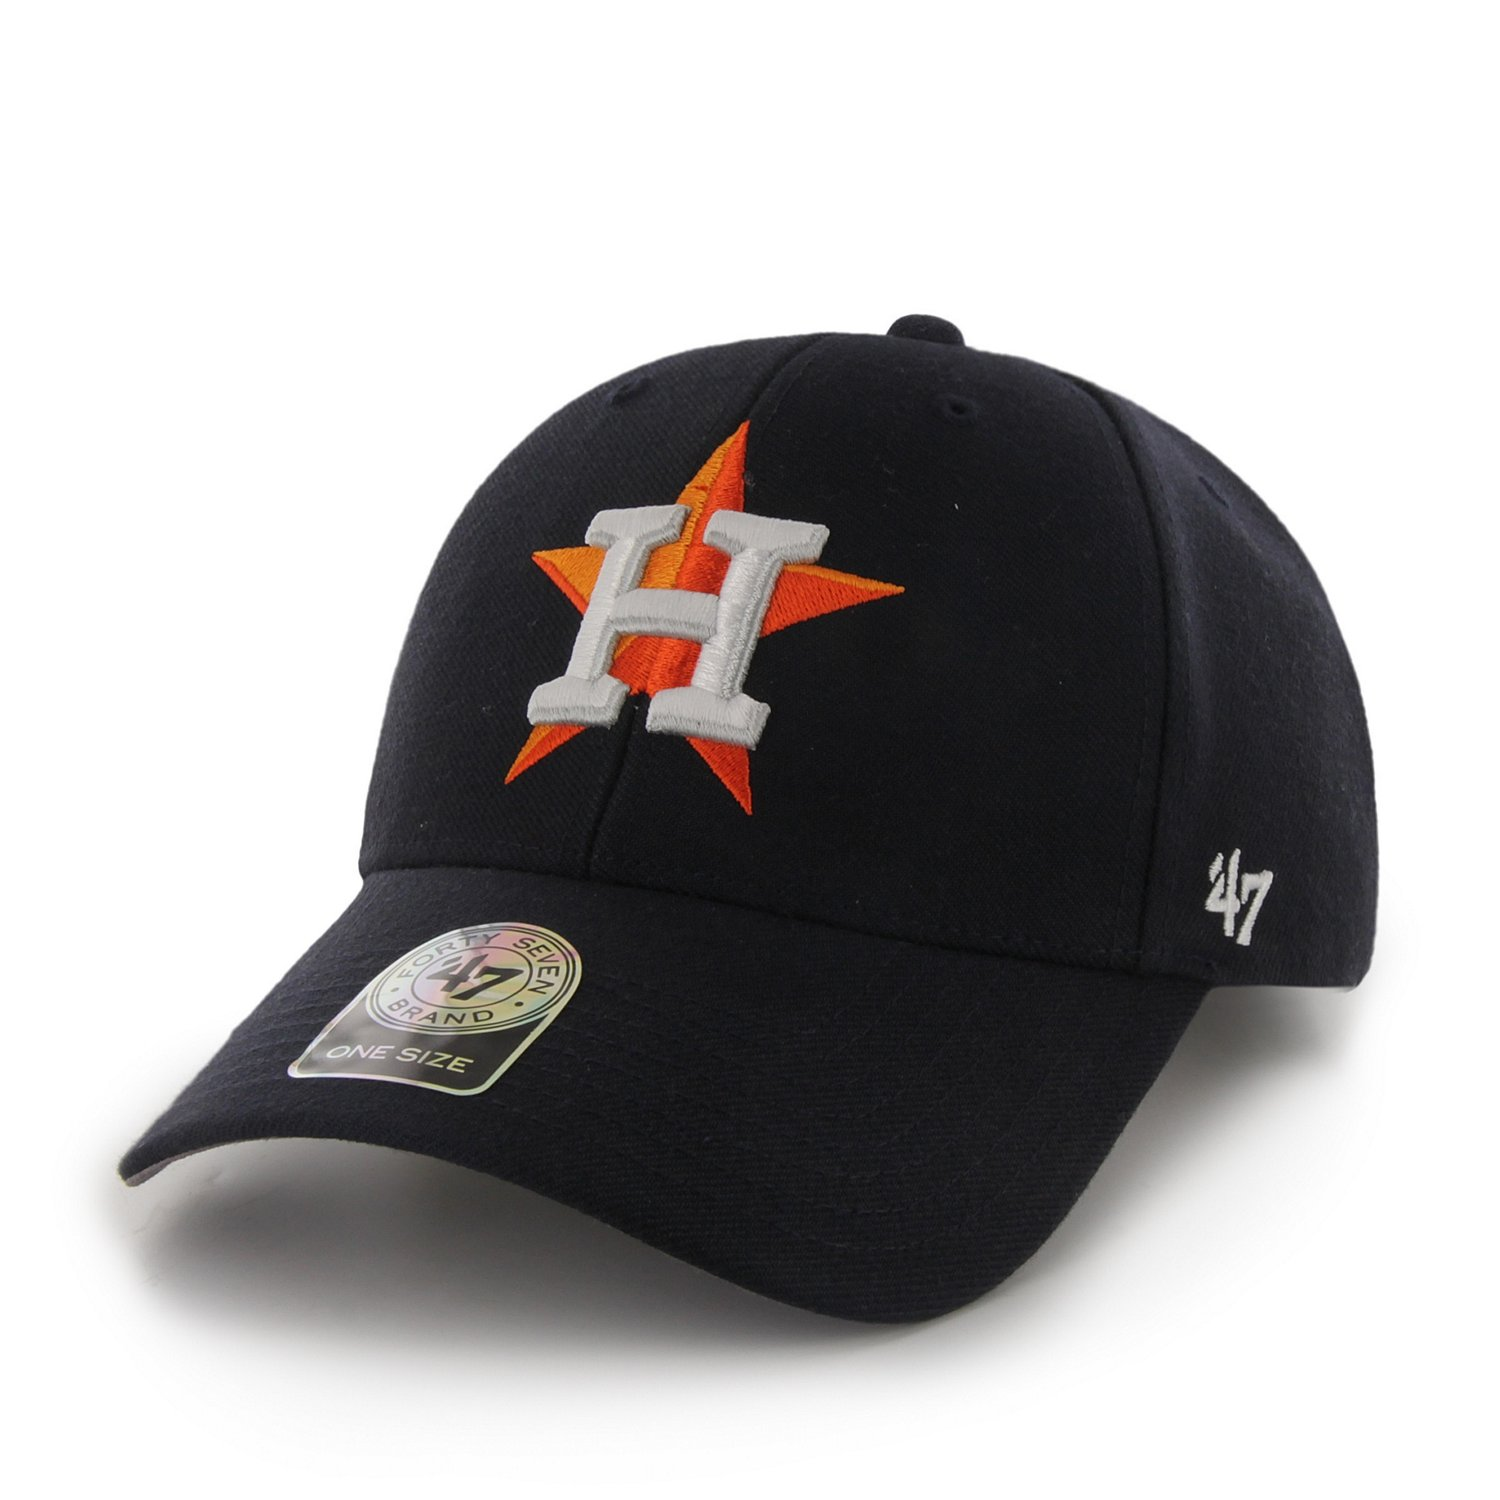 super popular b941b 153b8 Display product reviews for  47 Adults  Houston Astros MVP Cap